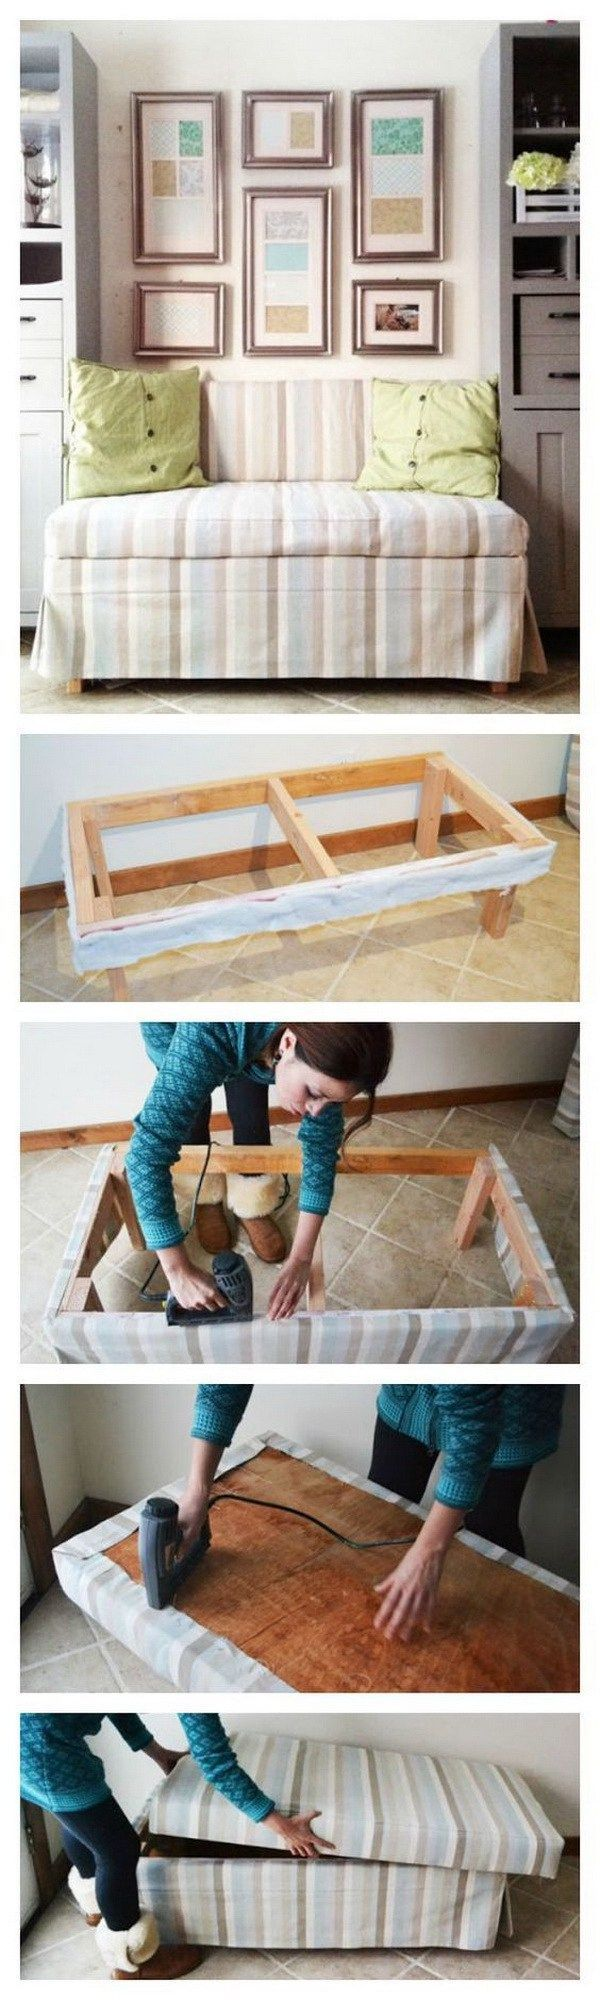 DIY 2x4 Upholstered Banquette Seat: Free step by step plans to build this upholstered banquette seat.